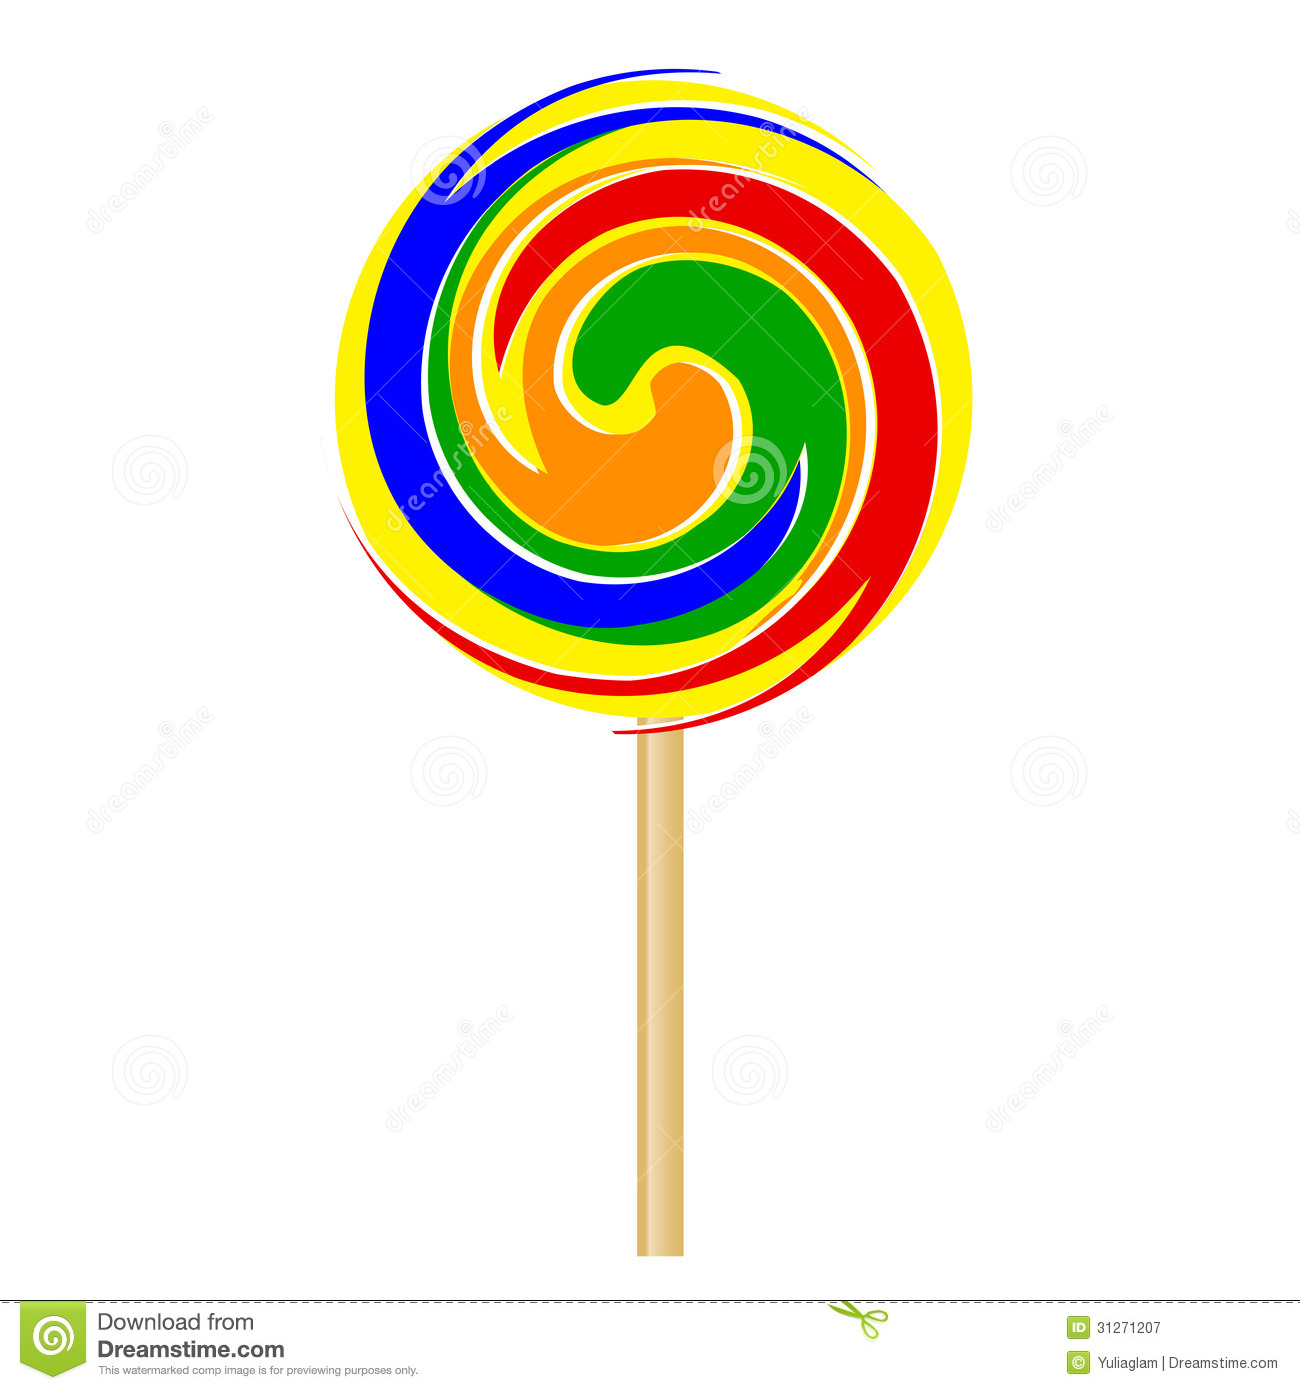 Clipart lollipop clip black and white Swirly lollipops clipart clipart suggest - Clipartable.com clip black and white